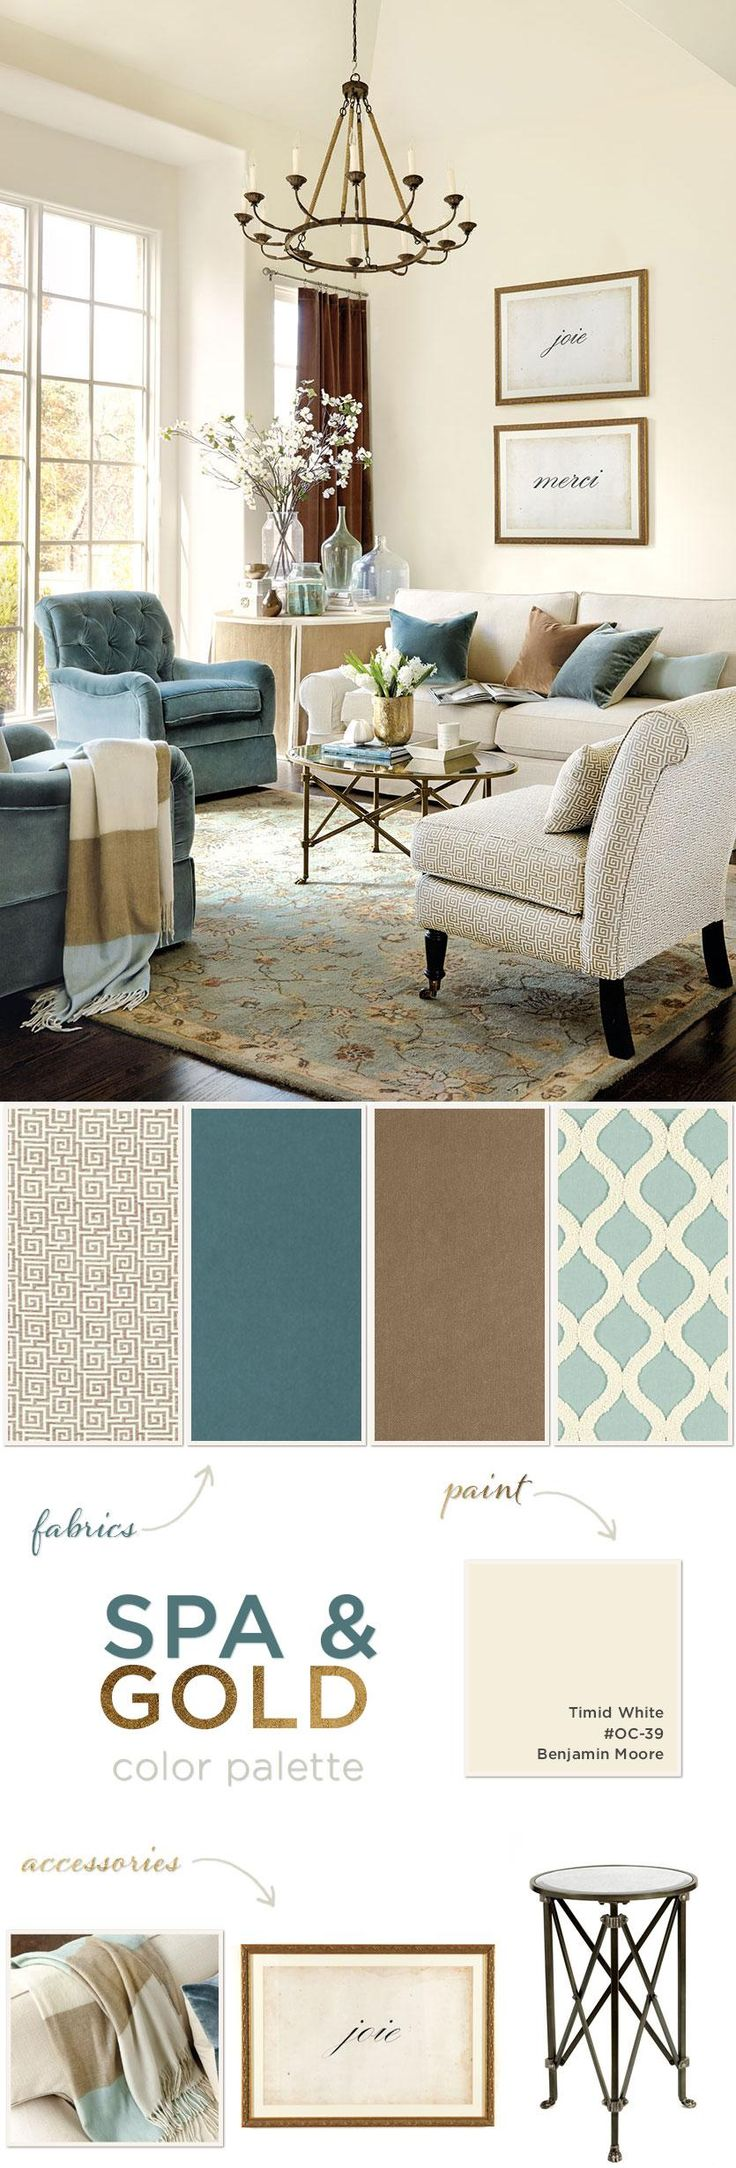 Bedroom color palette - Gold Gives Spa Blue A Cozy Warmth Color Palette For Formal Living Dining